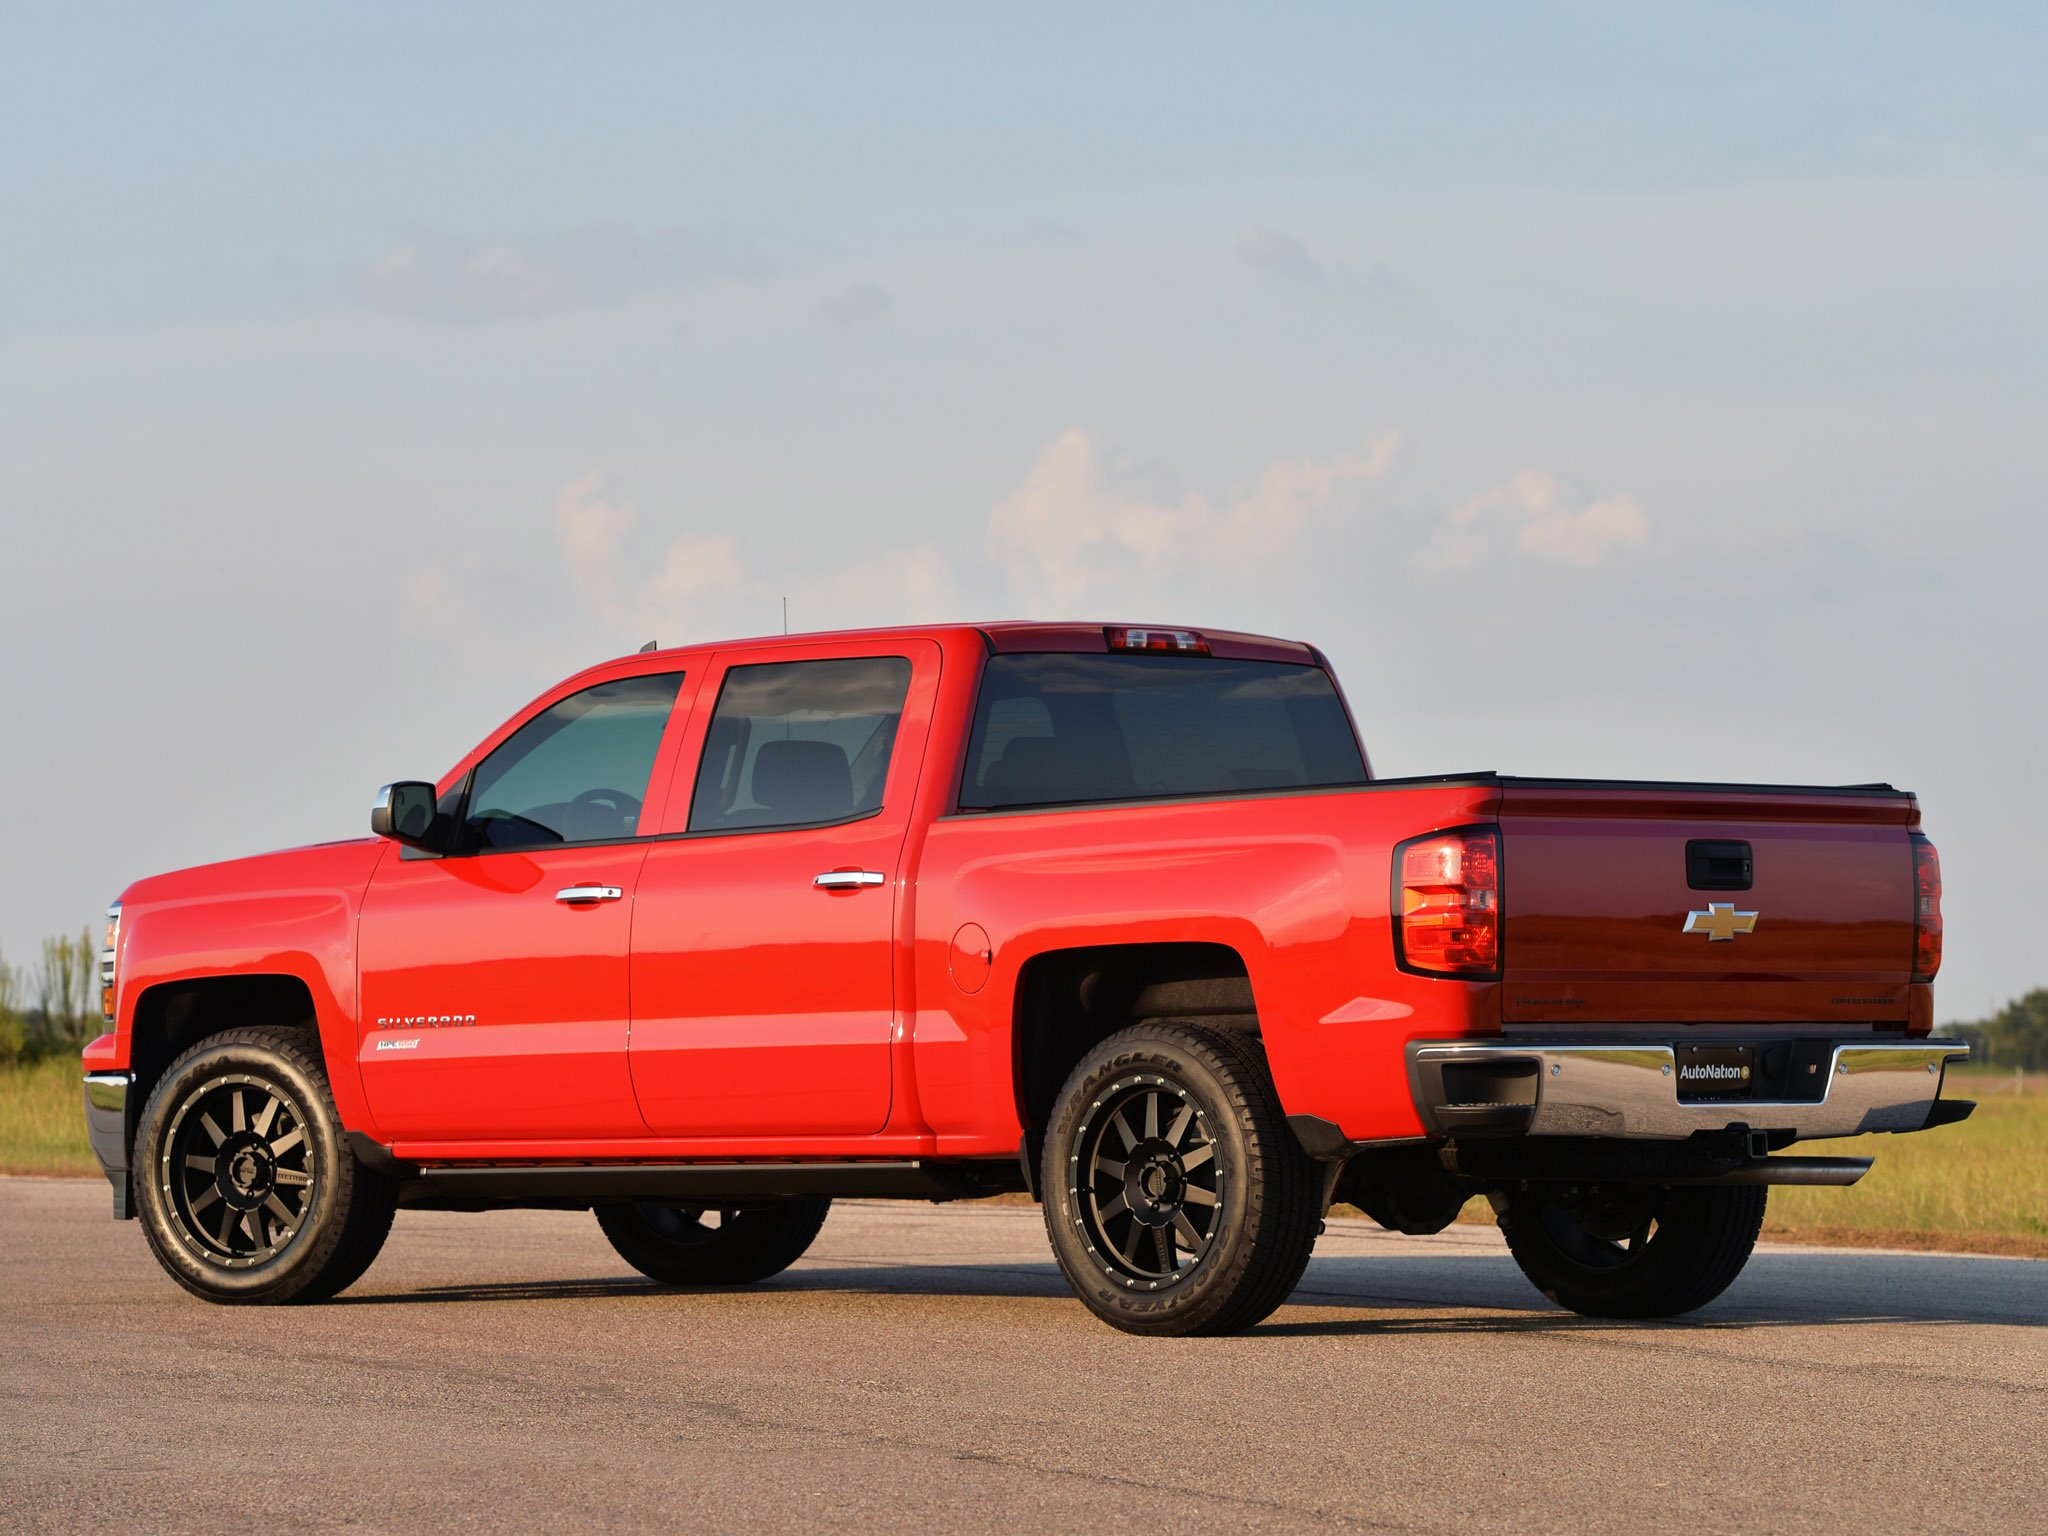 2014 hennessey chevrolet silverado hpe550 pick up supercharger wallpaper 2048x1536 462196 wallpaperup